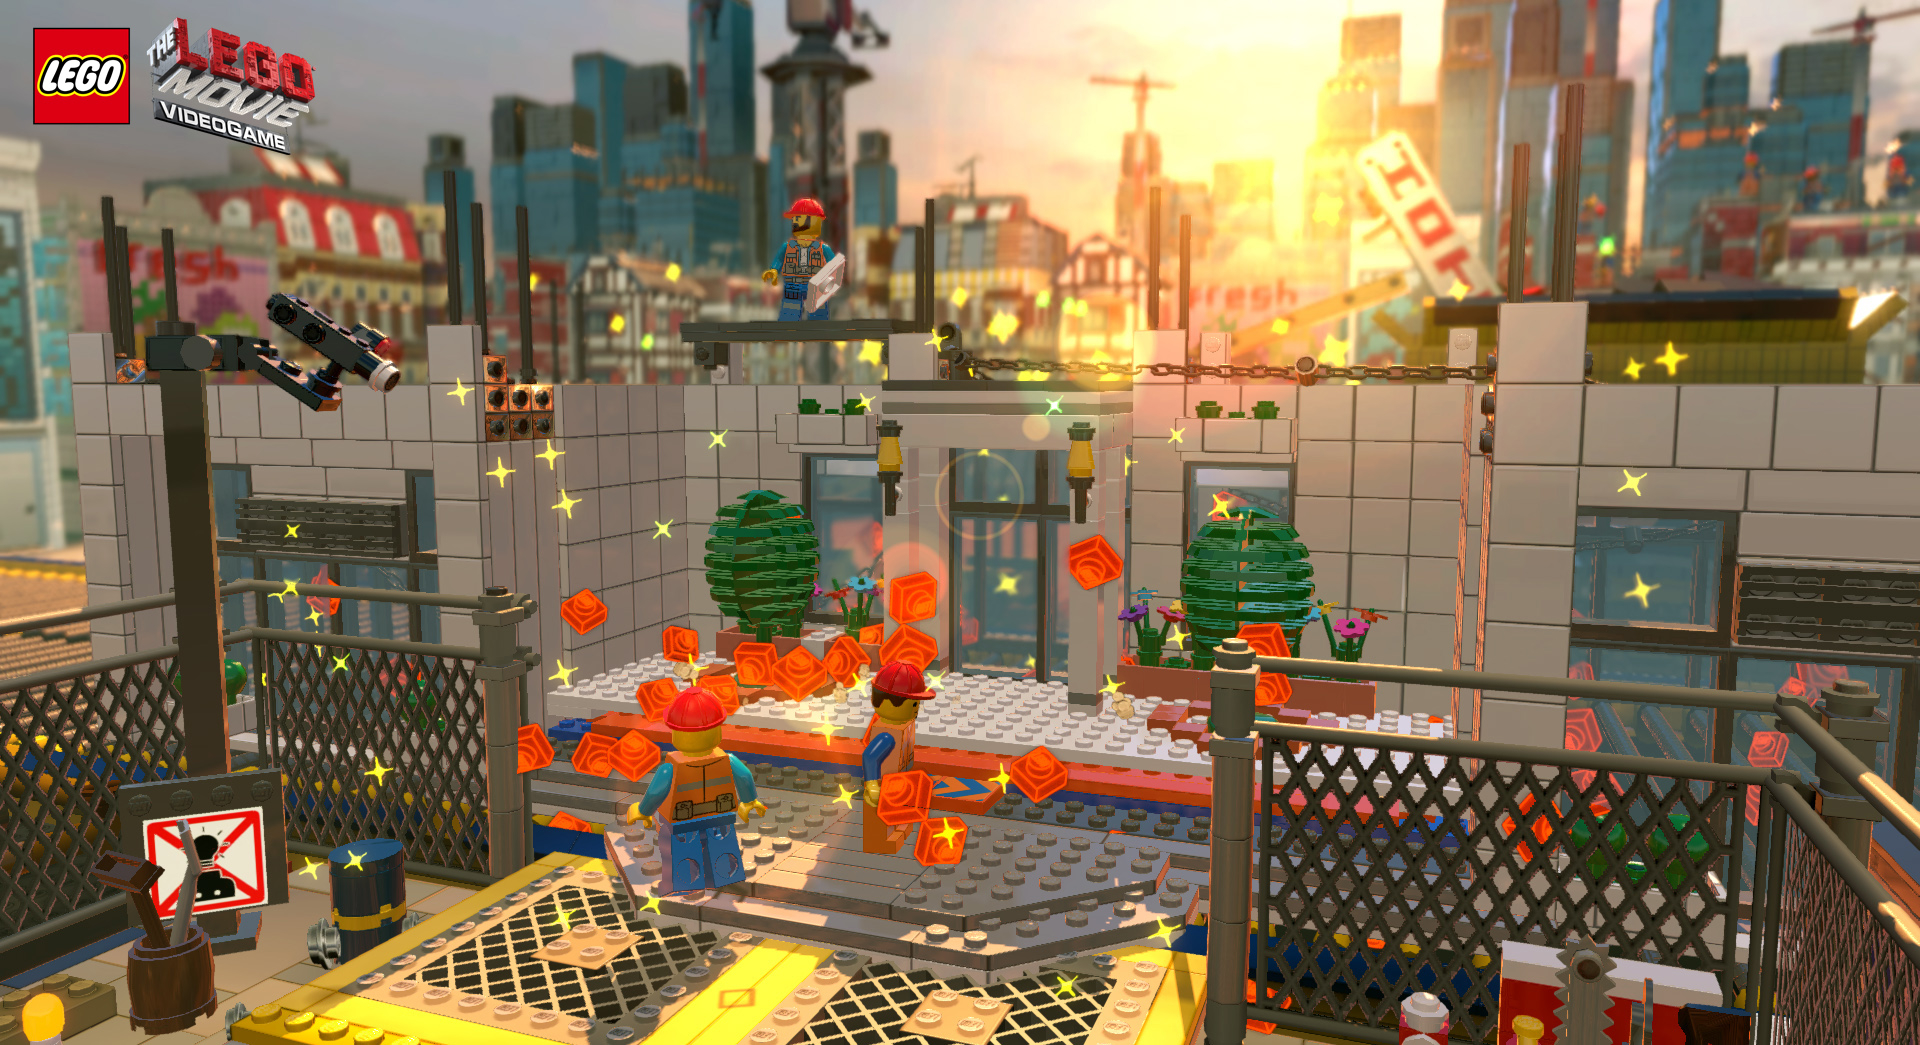 The LEGO Movie Videogame announced, the game based off of the movie based off of the toys